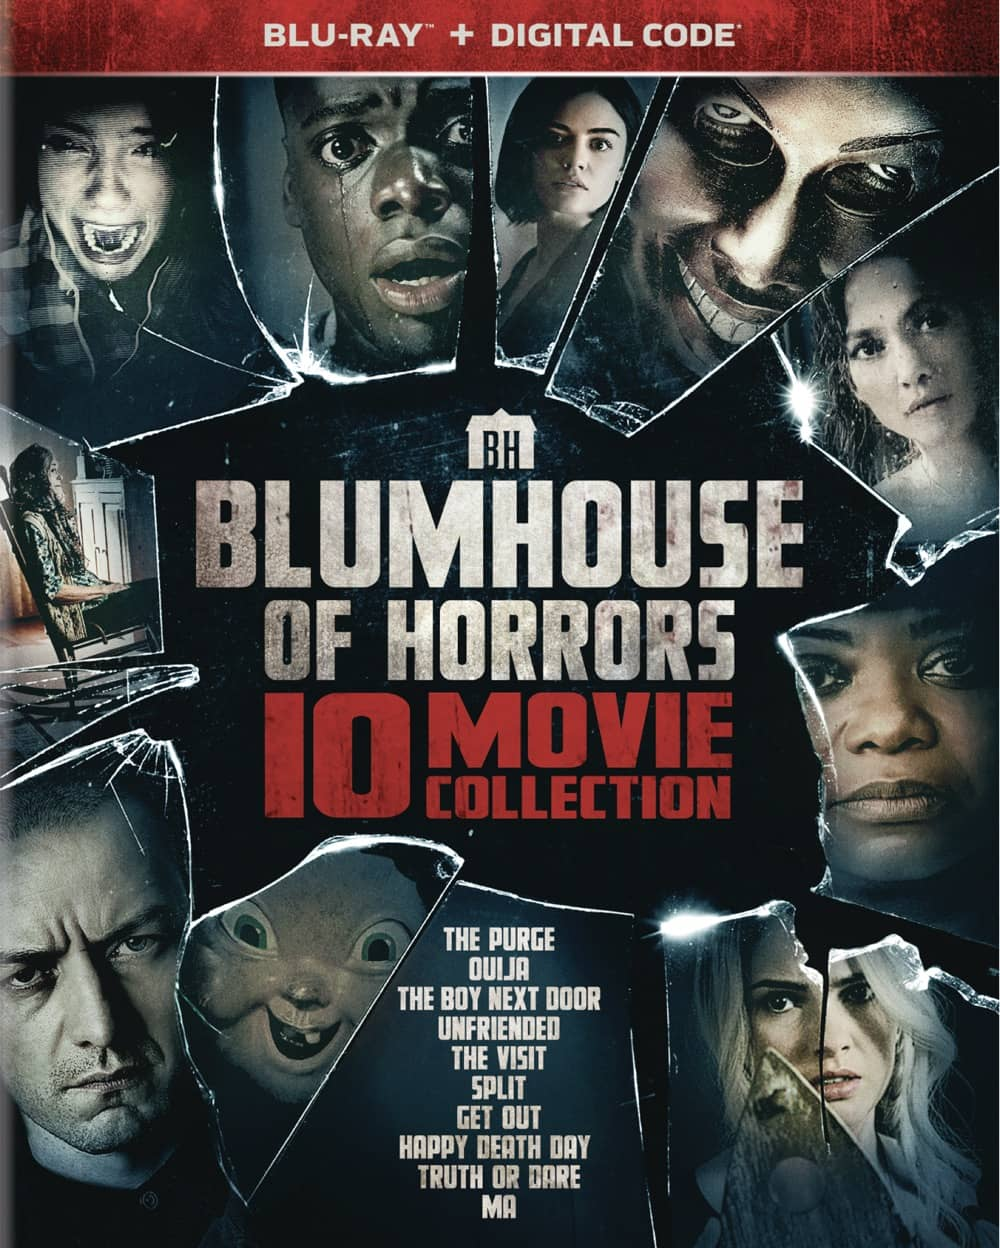 BD Blumhouse10MovieCollection Slipcase 2D